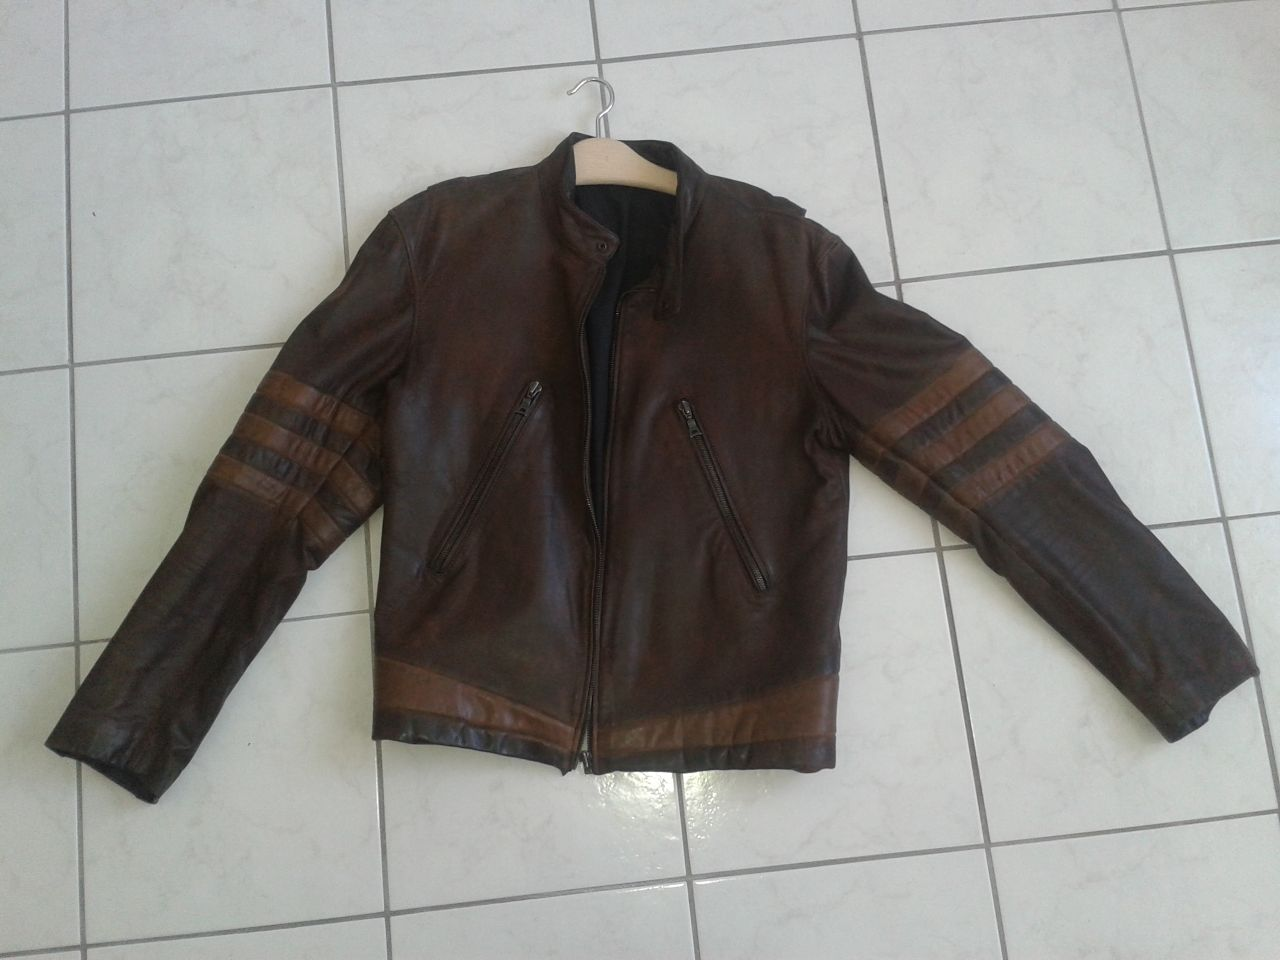 Leather jacket yellow stripe - Fs Wolverine Leather Jacket S For Sale